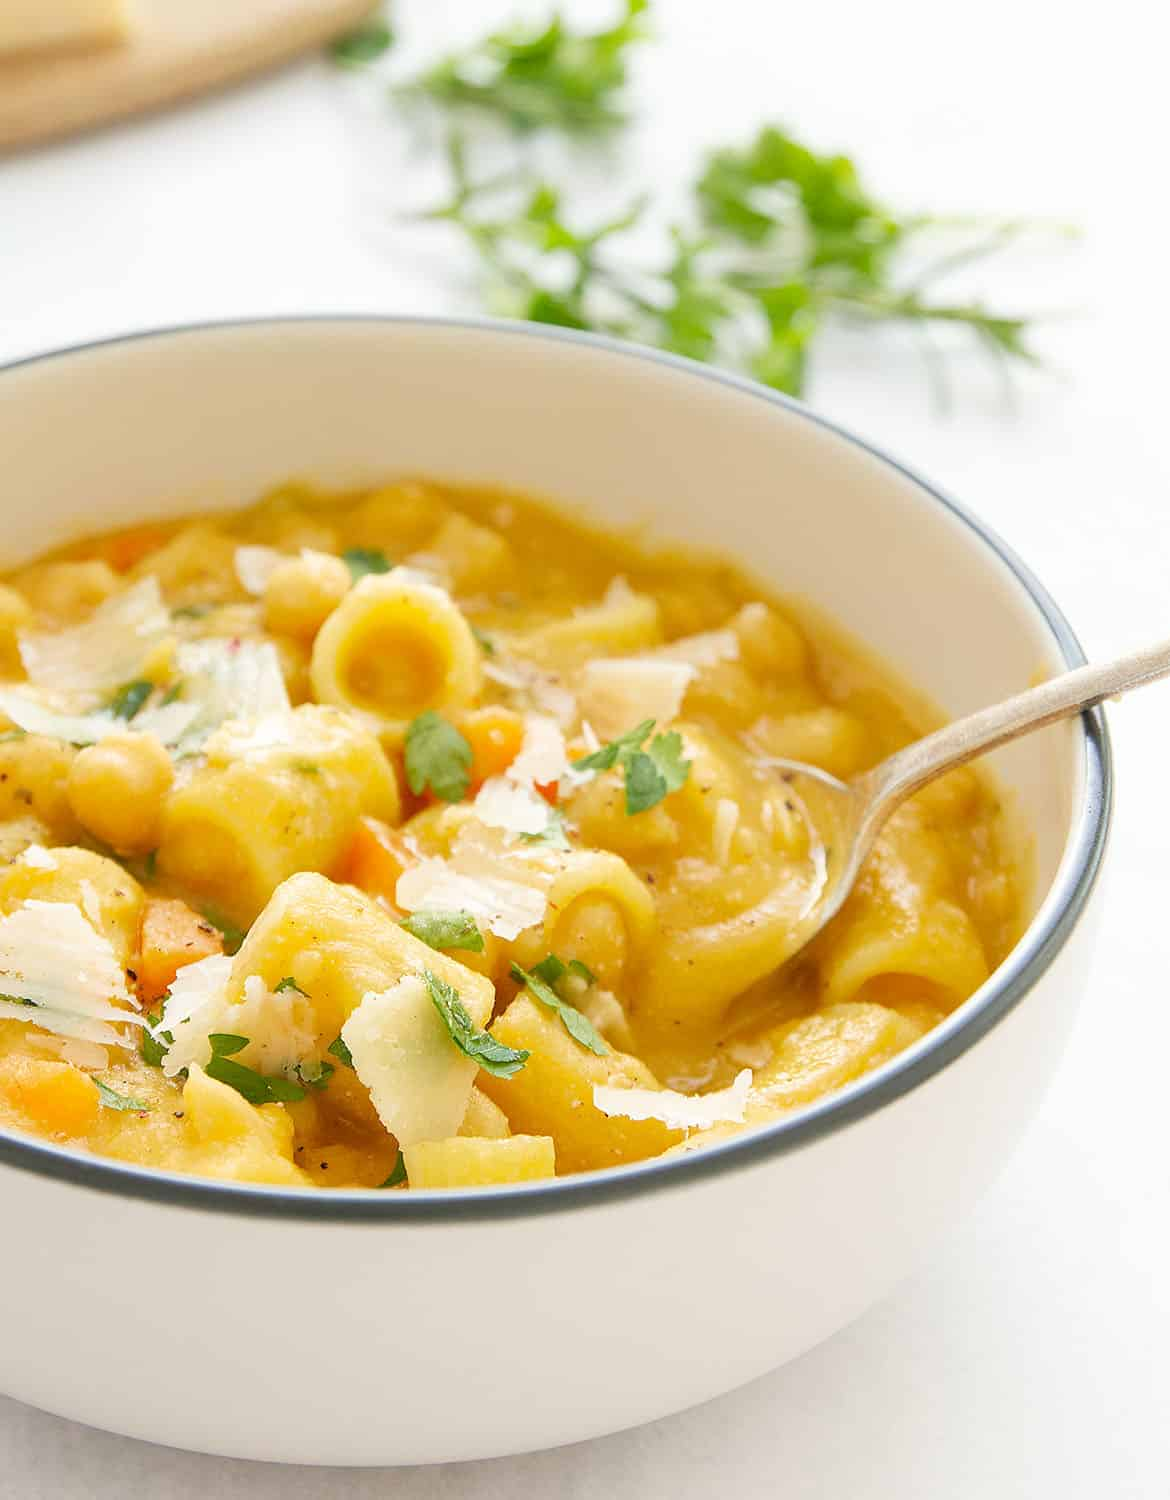 Pasta with chickpeas in a white bowl with a spoon.